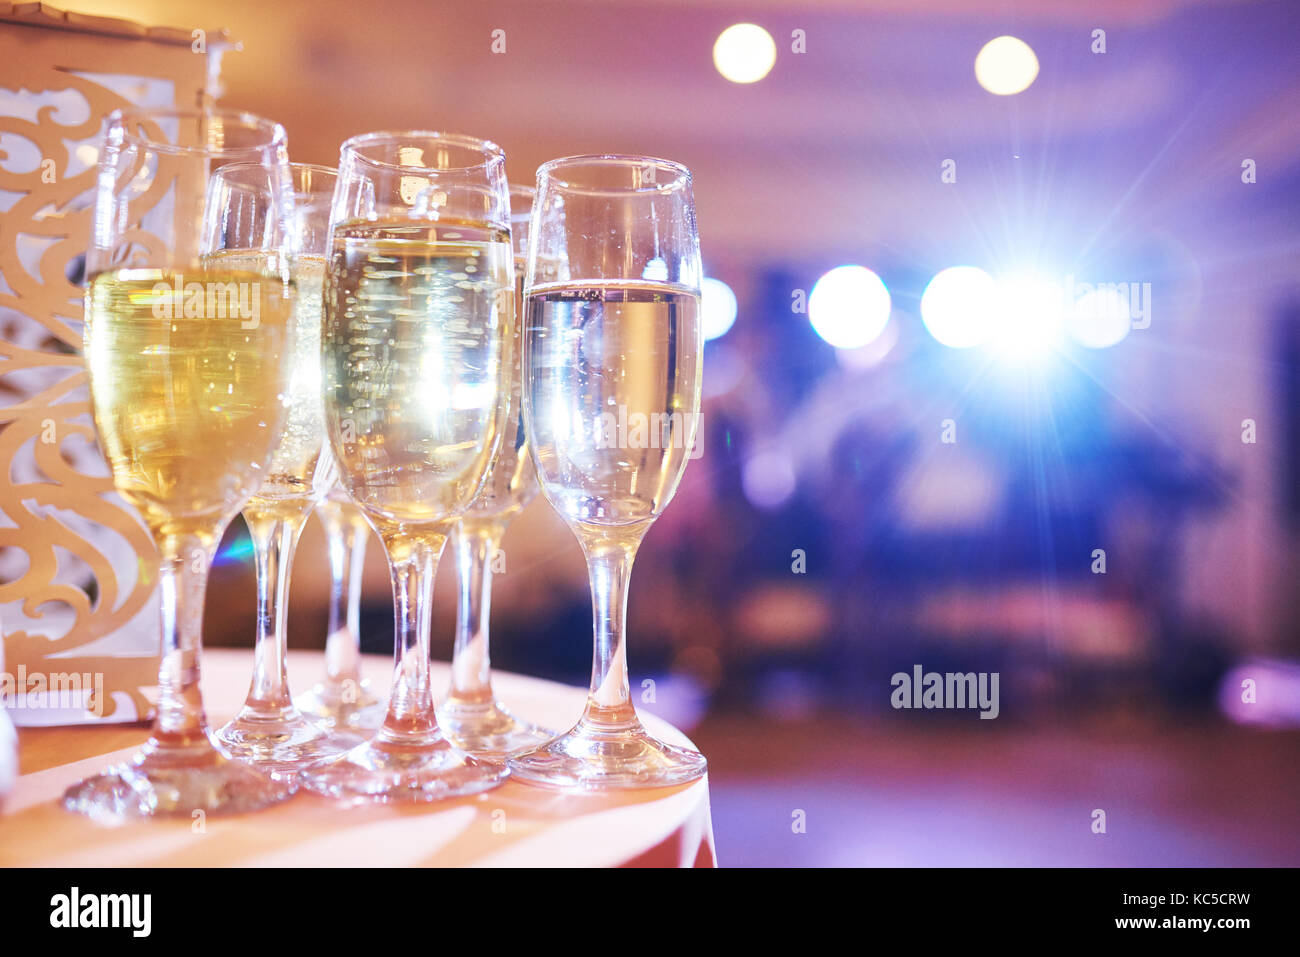 A lot of wine glasses in blue light with a cool delicious champagne or white wine at the bar Stock Photo